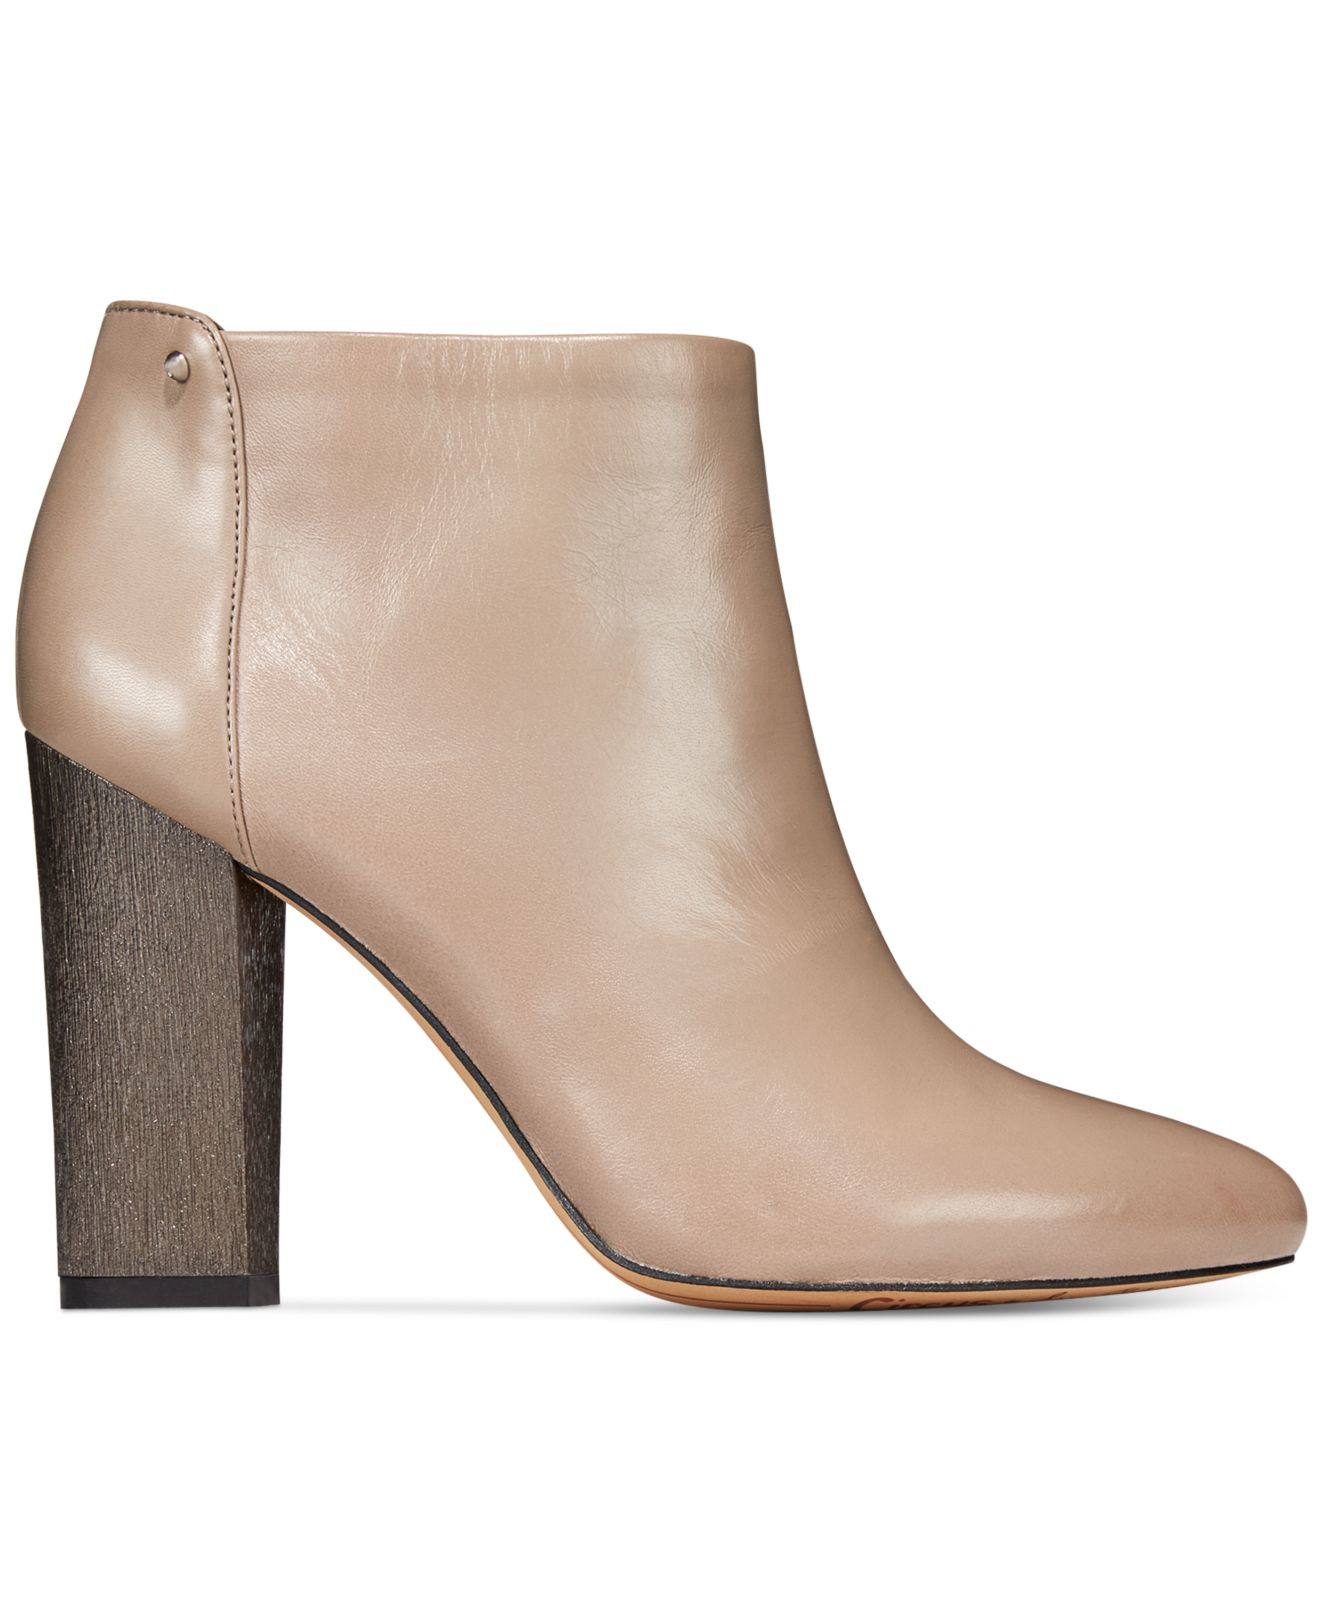 3329180dc650 Lyst - Circus by Sam Edelman Bond Dress Ankle Booties in Gray